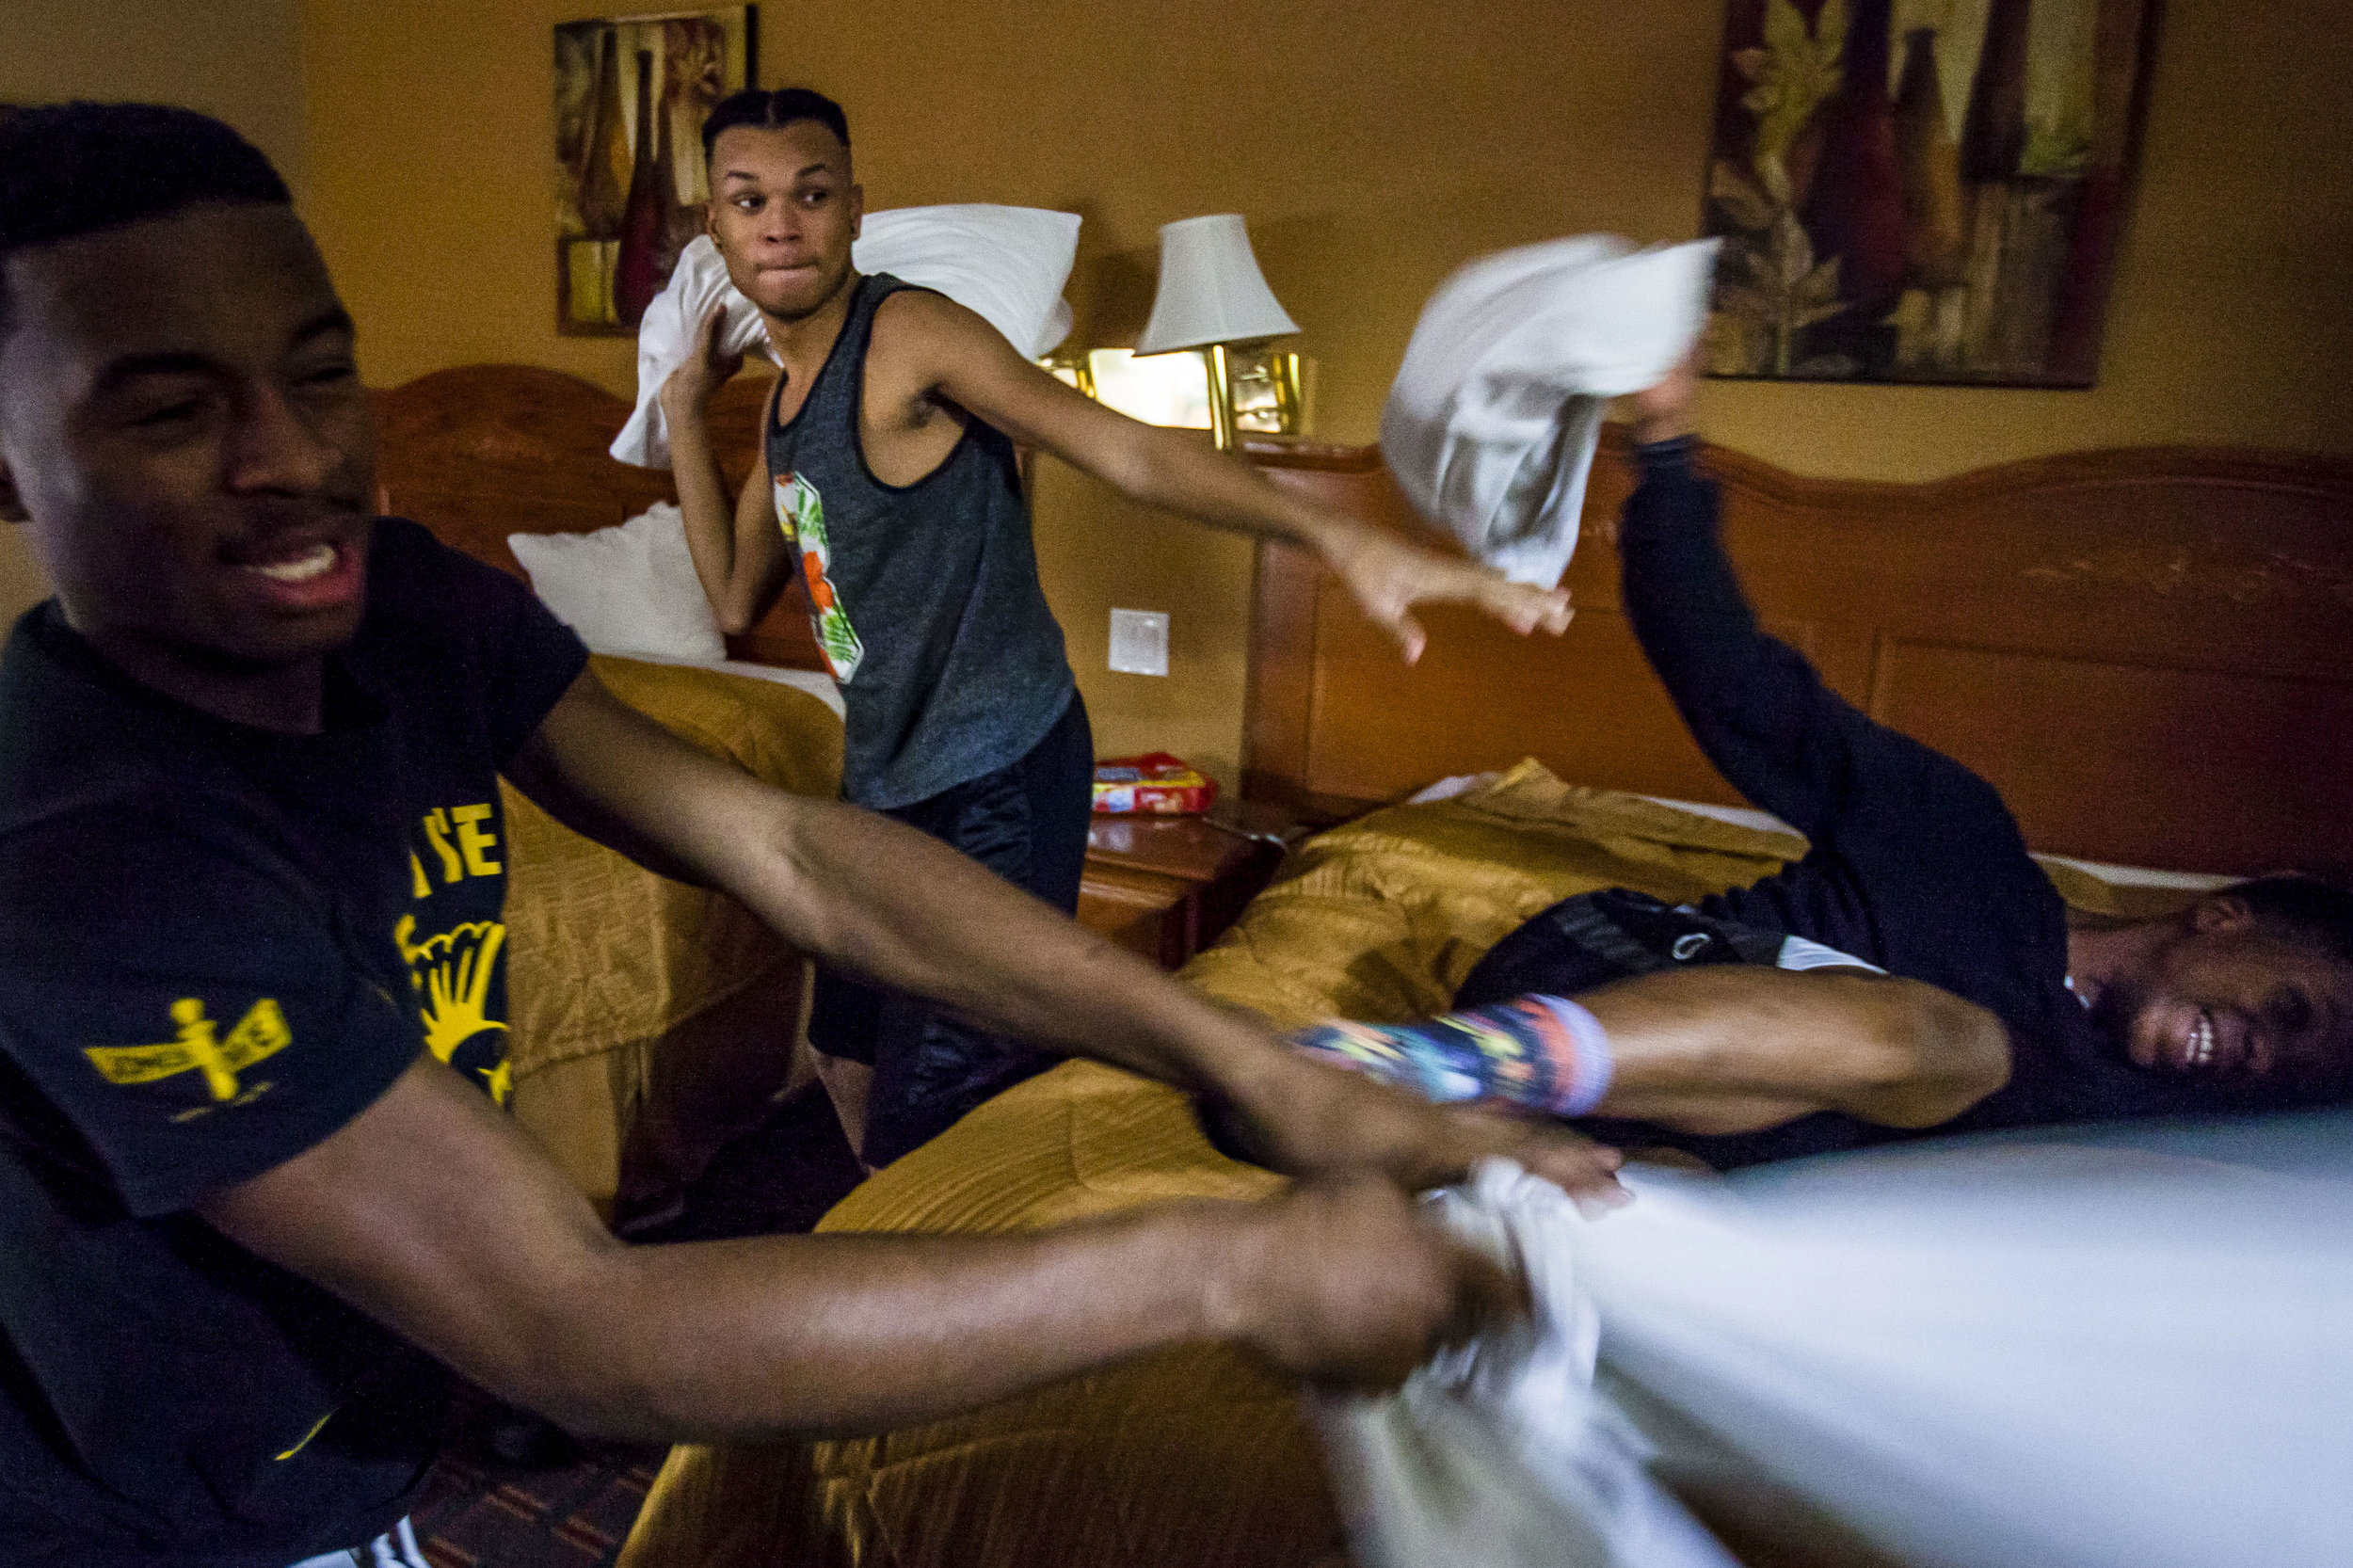 Darquese Doster, left, and Terry Fifer swing their pillows at Jamia Bates in the midst of a pillow fight against the girls at the hotel where the Saginaw High School Marching Band, better known as the Mighty Marchin' Trojans, stayed in Atlanta, Ga.